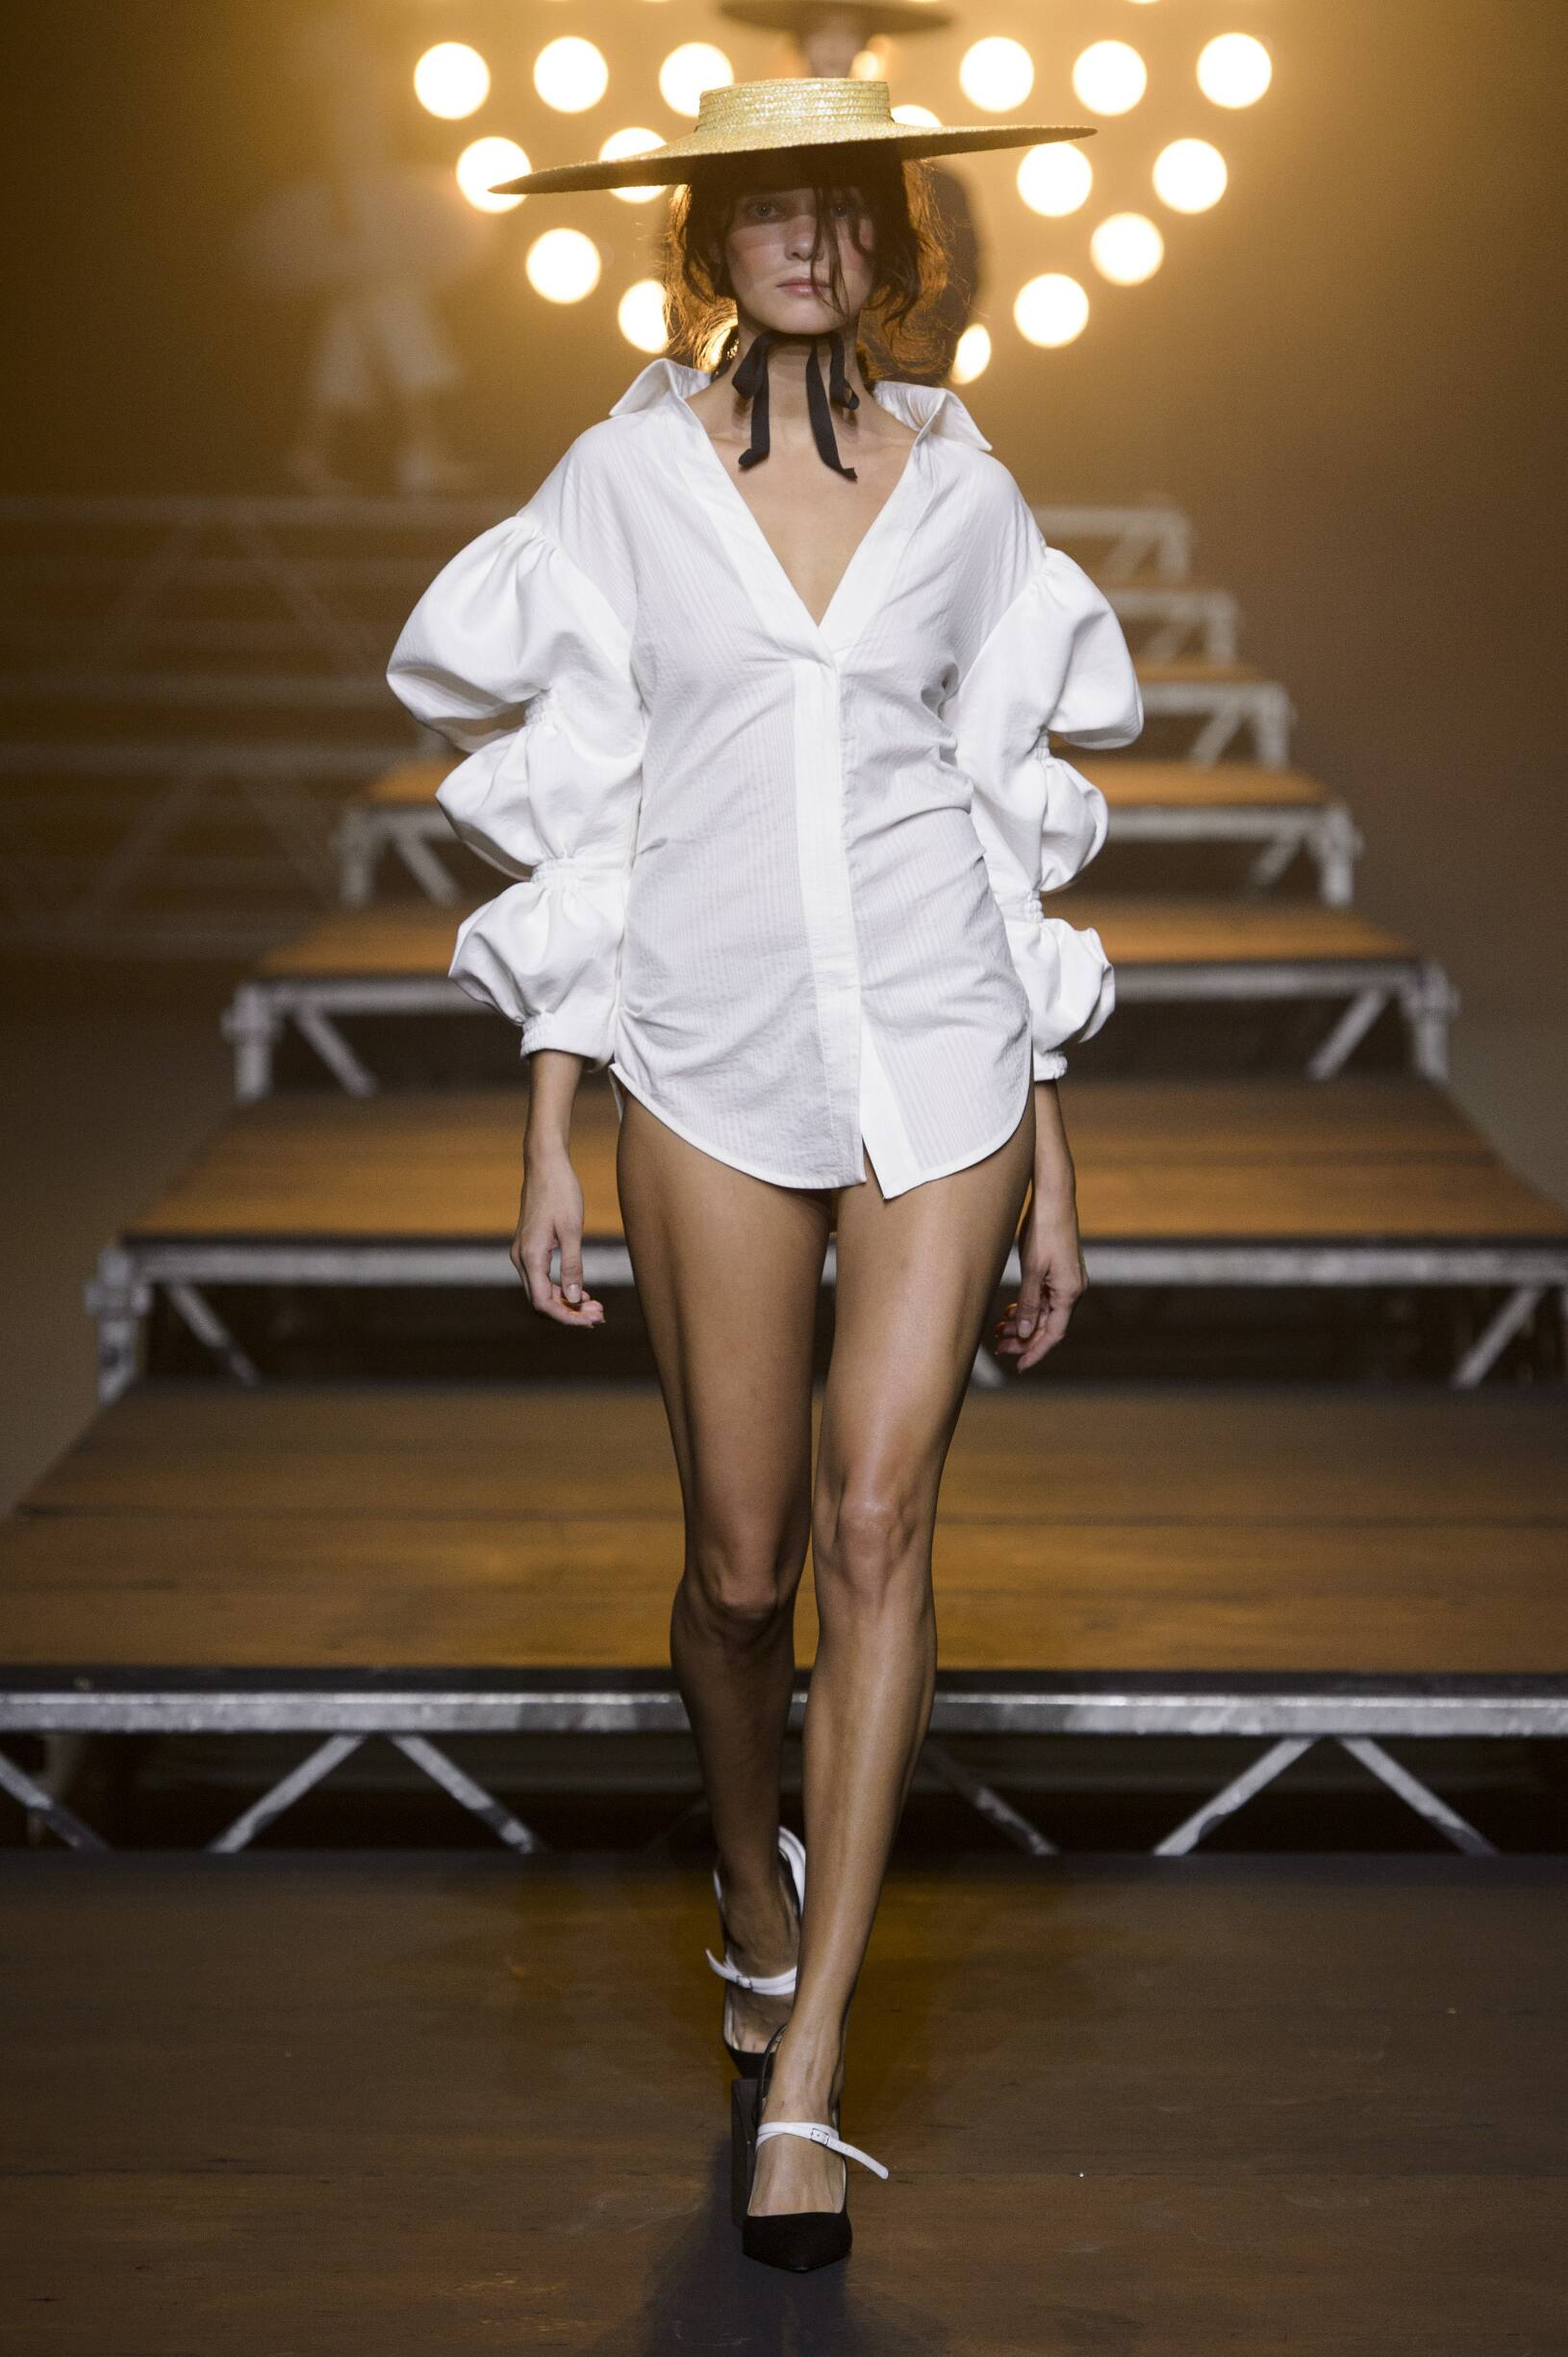 JACQUEMUS SPRING SUMMER 2017 WOMEN'S COLLECTION | The ...